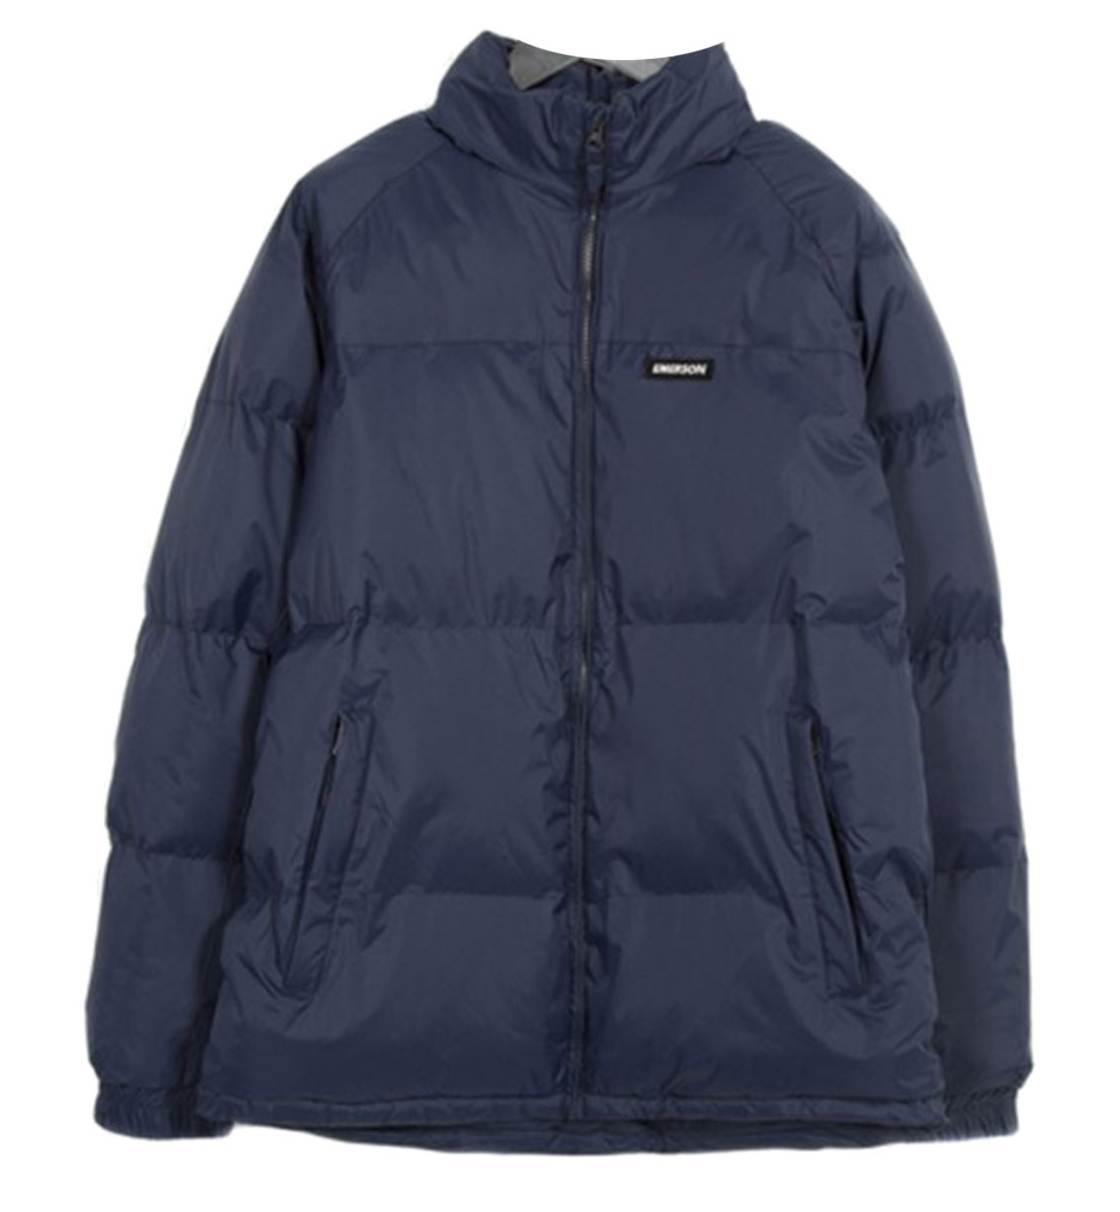 Emerson Ανδρικό Αθλητικό Μπουφάν Fw18 Men'S P.P.Down Jkt With Roll-In Hood EM10.71